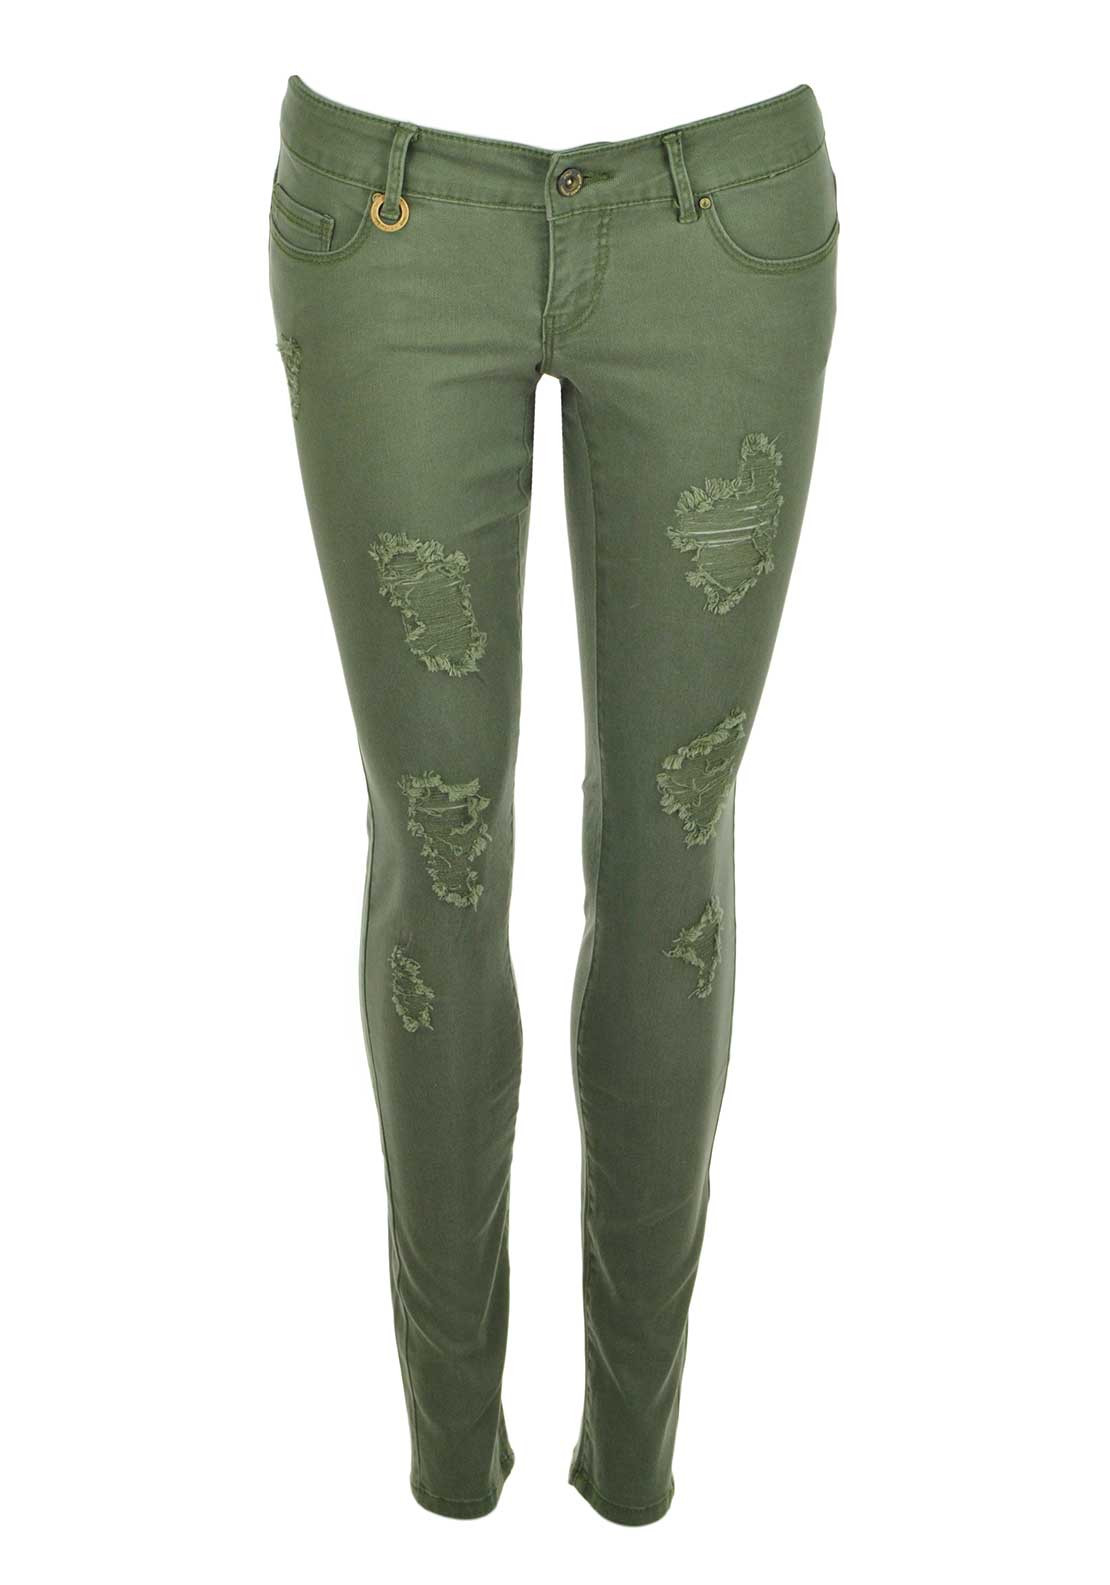 Only Coral Distressed Skinny Jeans, Four Leaf Clover Green